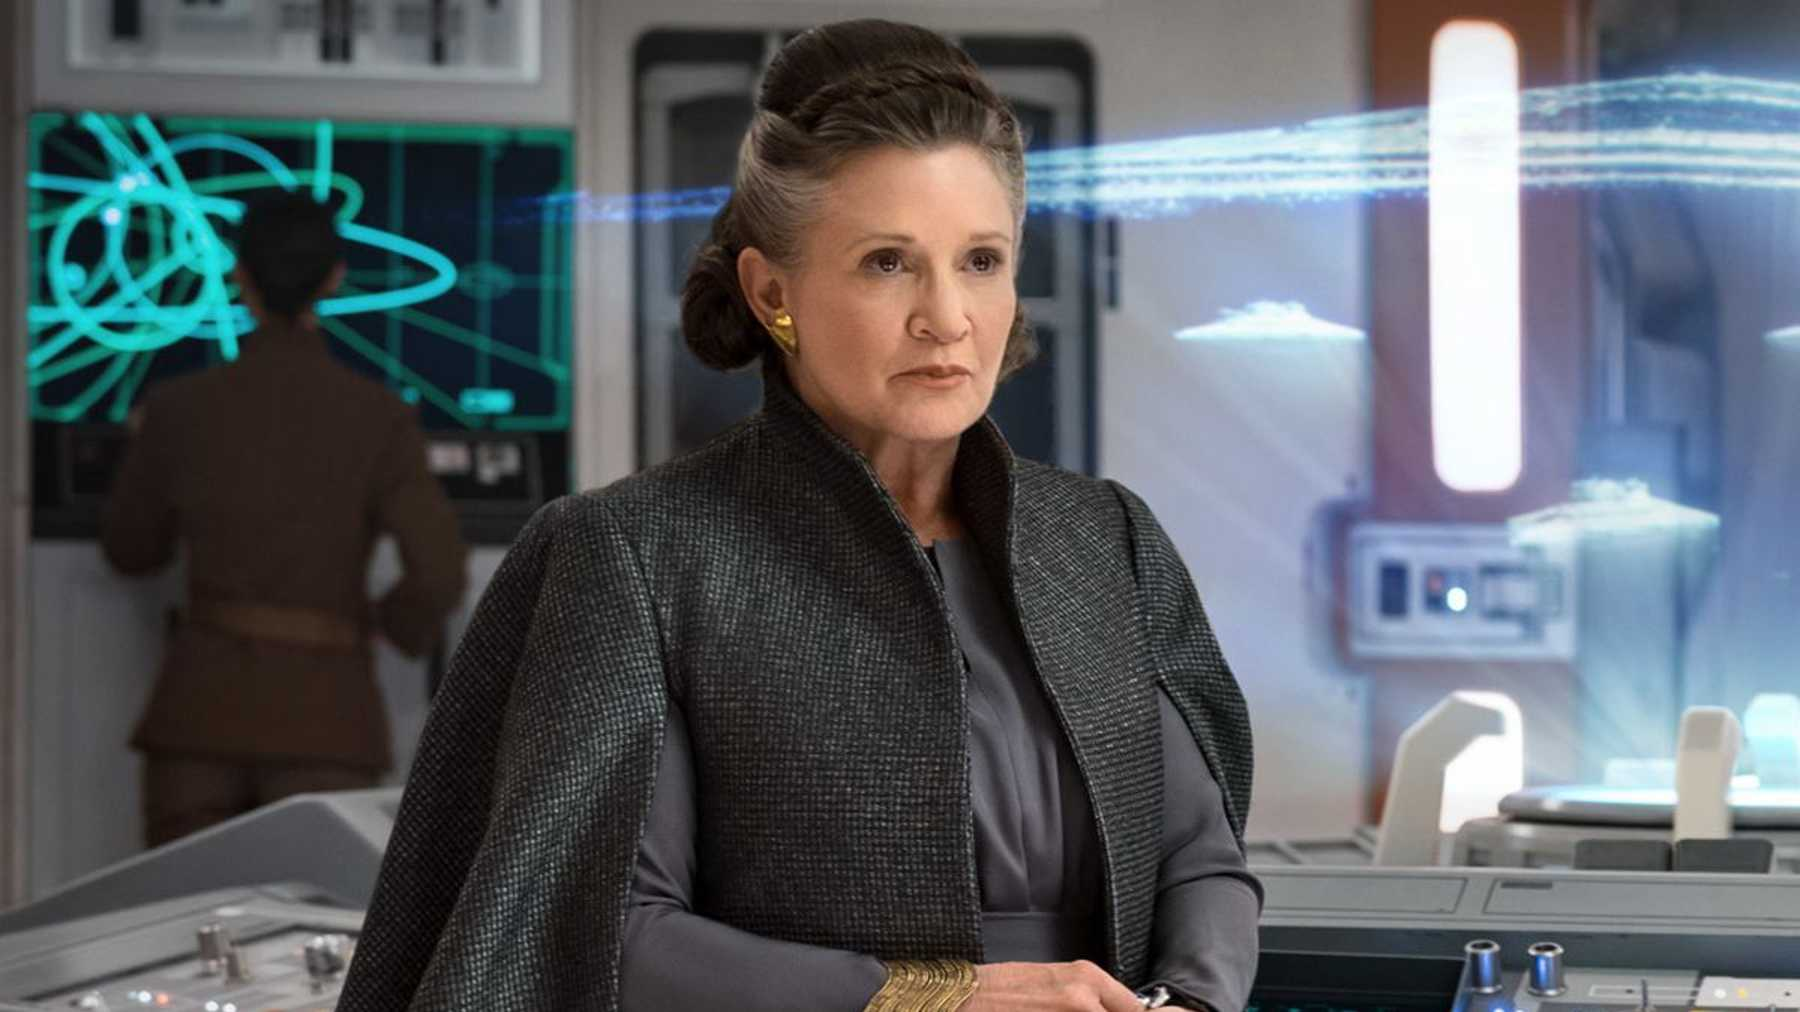 Star Wars Carrie Fisher Was Supposed To Be The Big Action Payoff For The Rise Of Skywalker Movies Empire